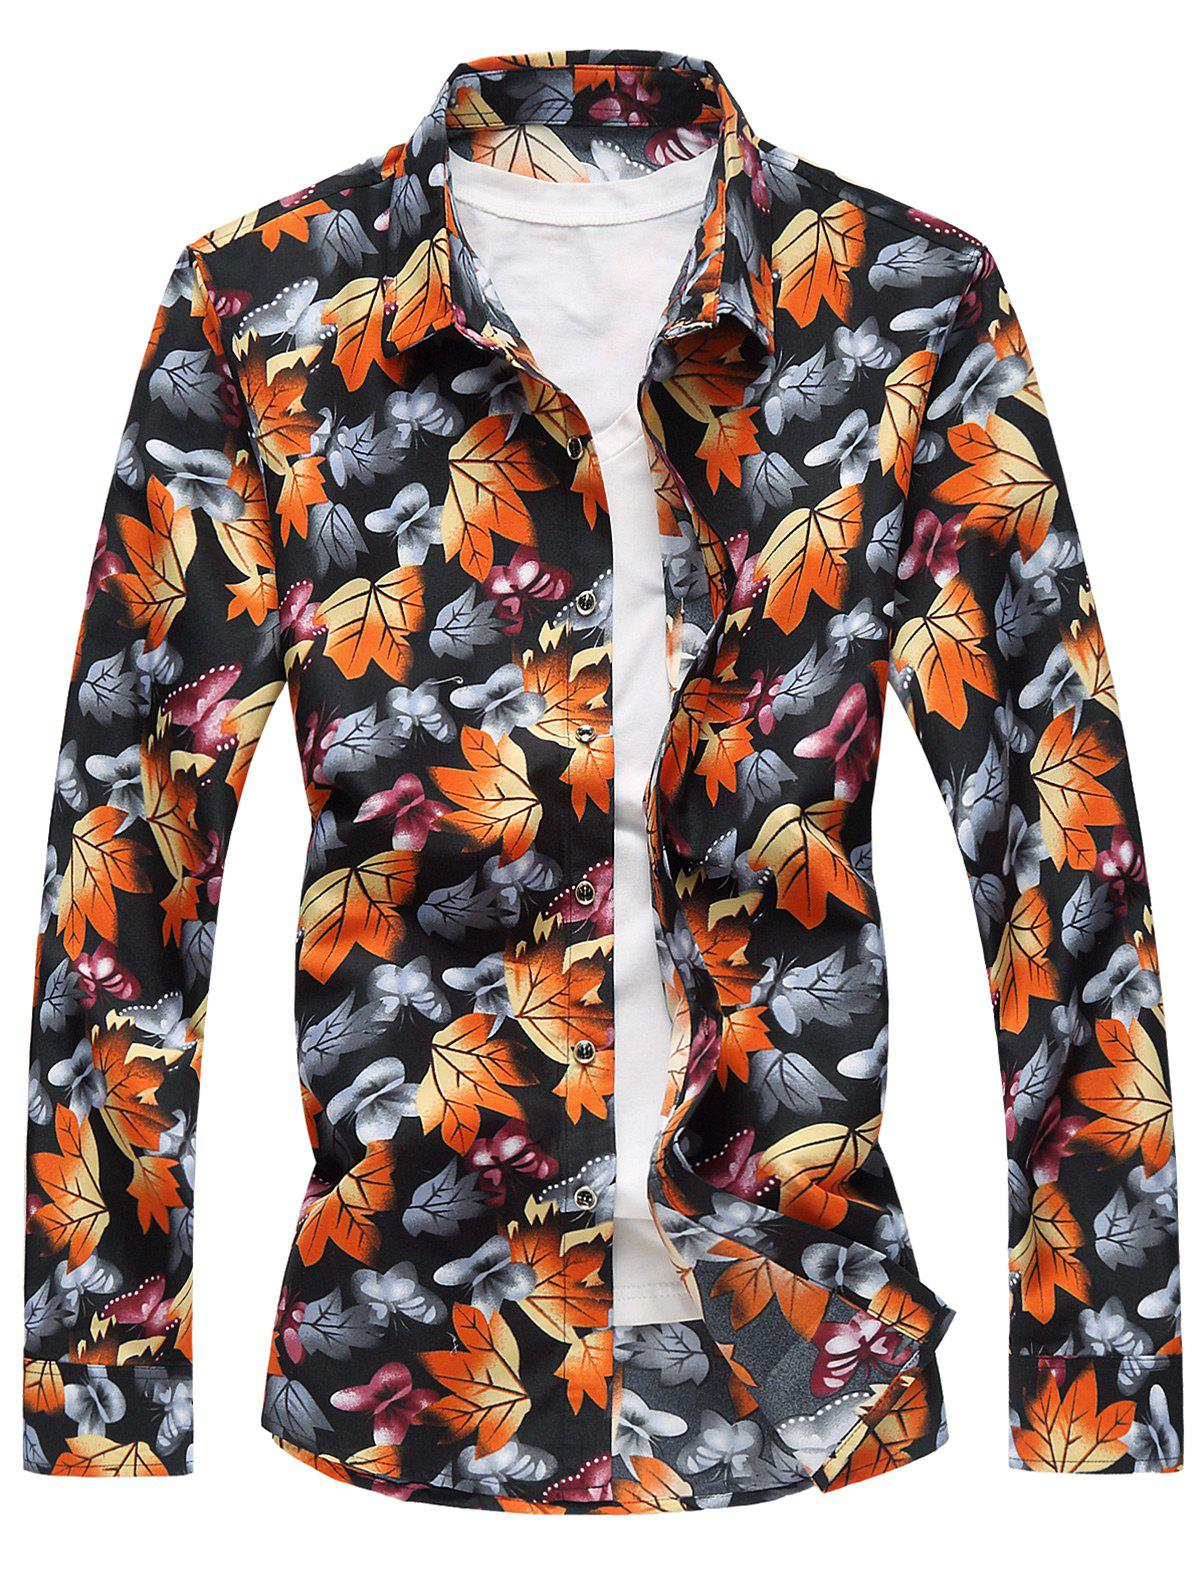 Chic 3D Maple Leaves and Butterflies Print Plus Size Shirt